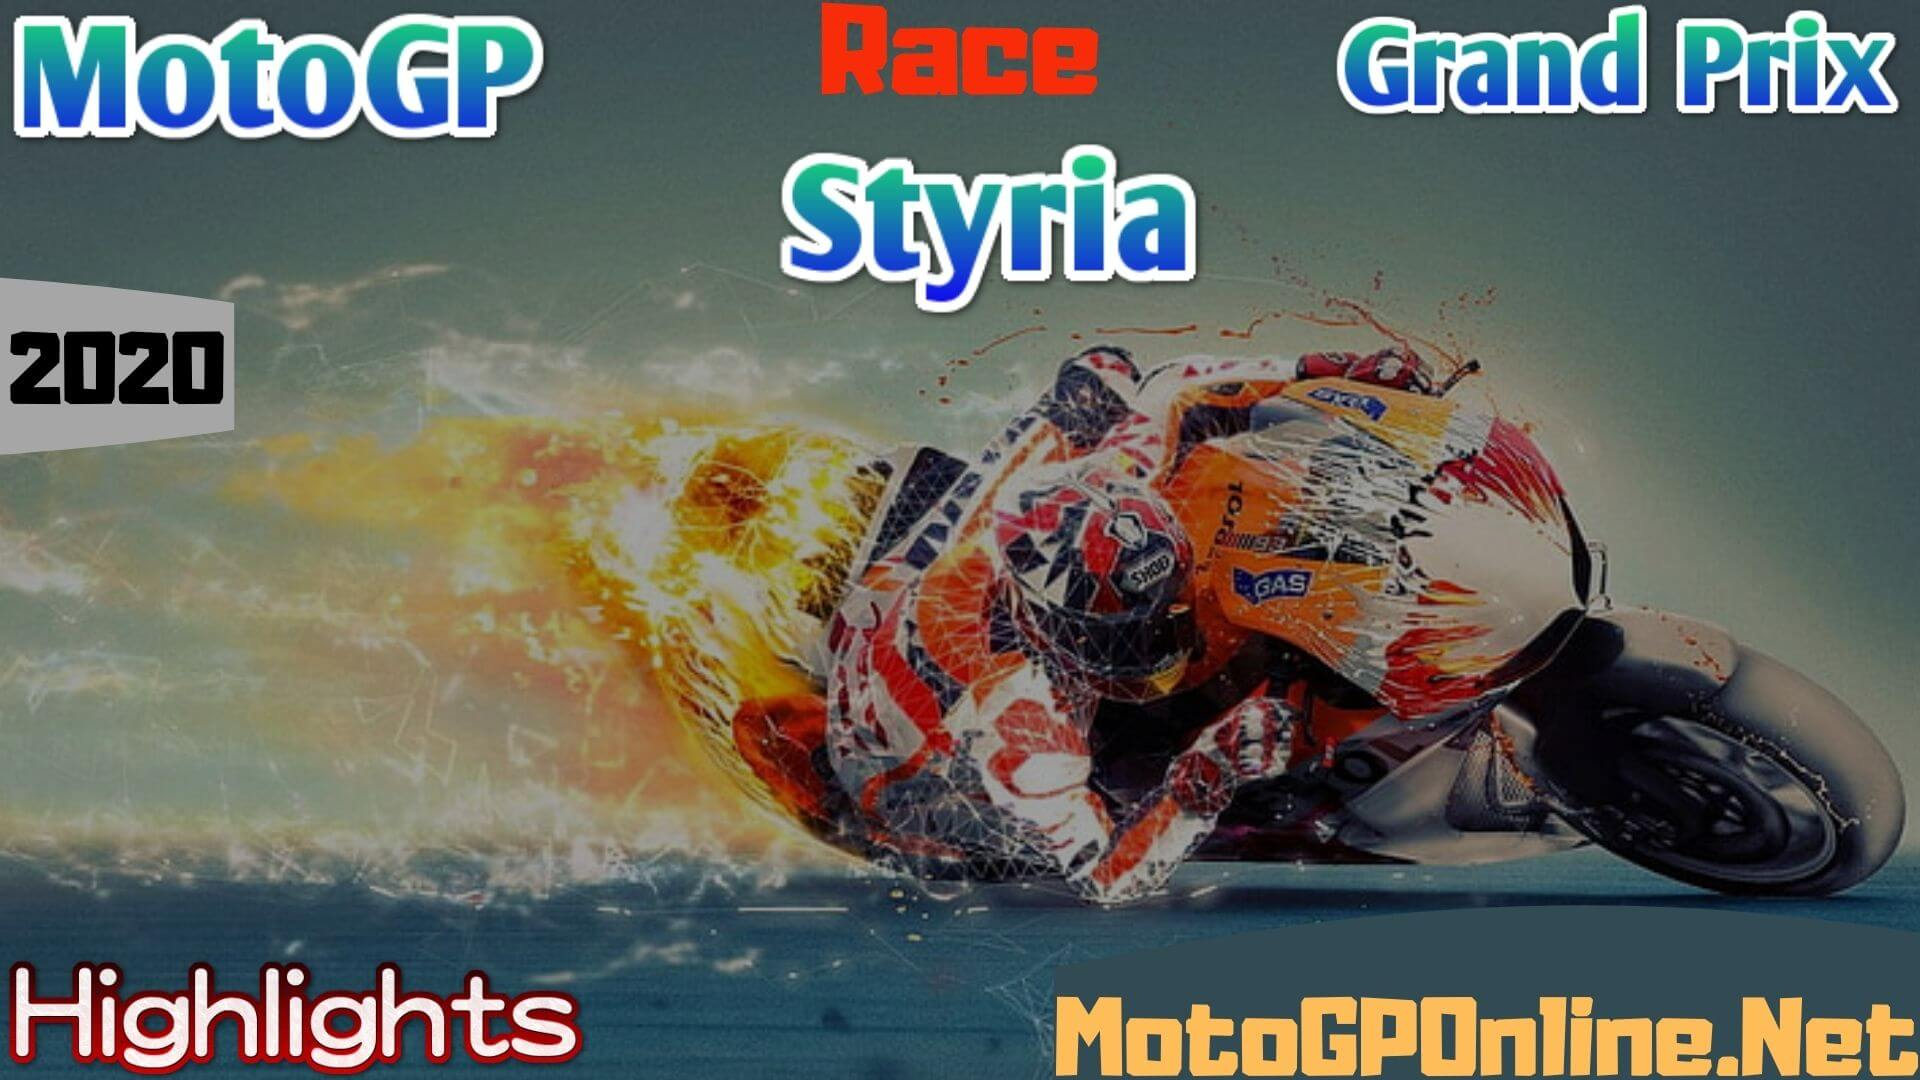 MotoGP Styria Grand Prix Highlights 2020